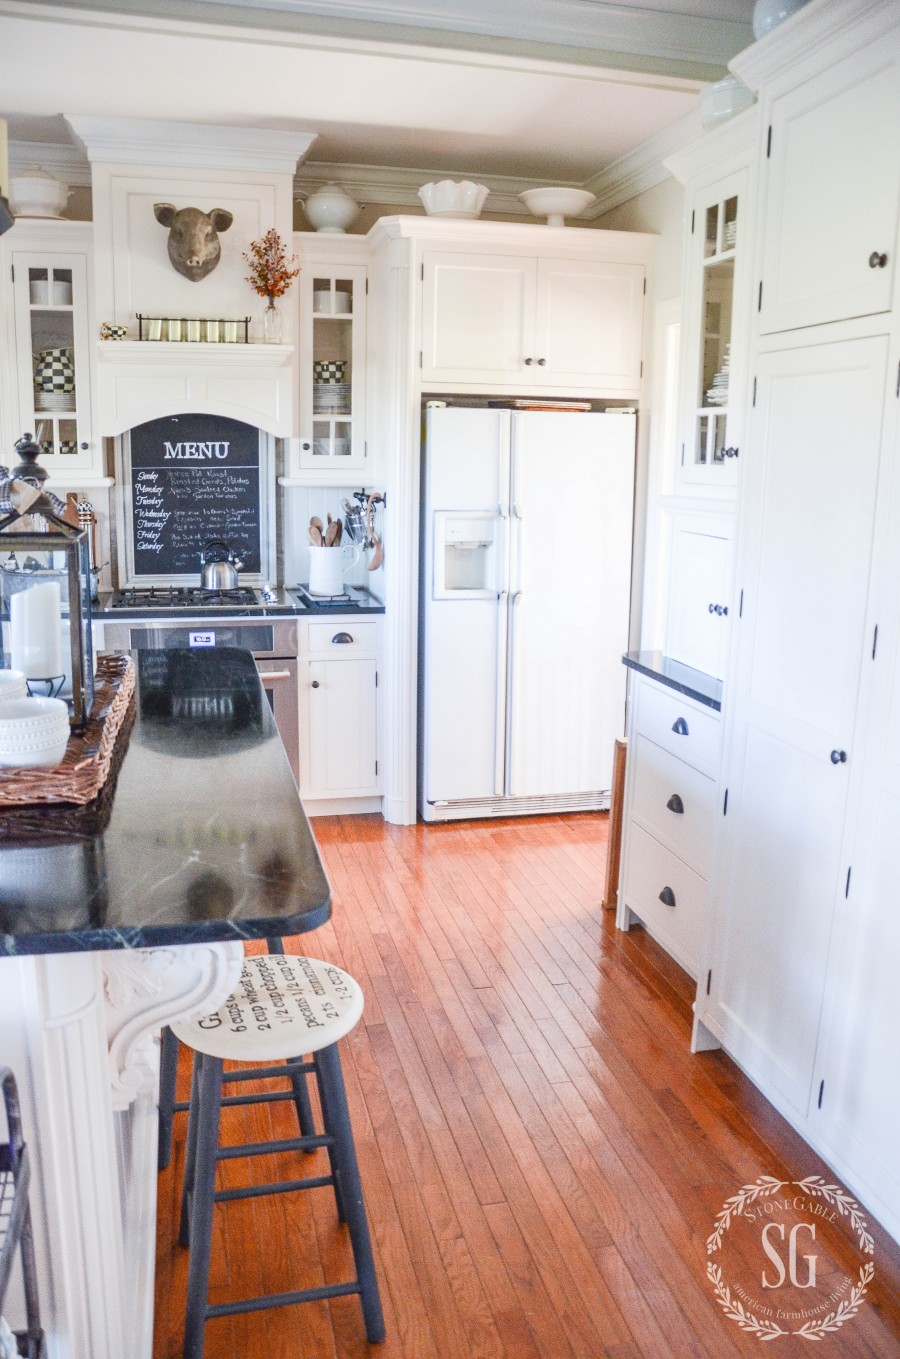 TIPS FOR KEEPING APPLIANCES IN TIP TOP SHAPE OVER THE HOLIDAYS